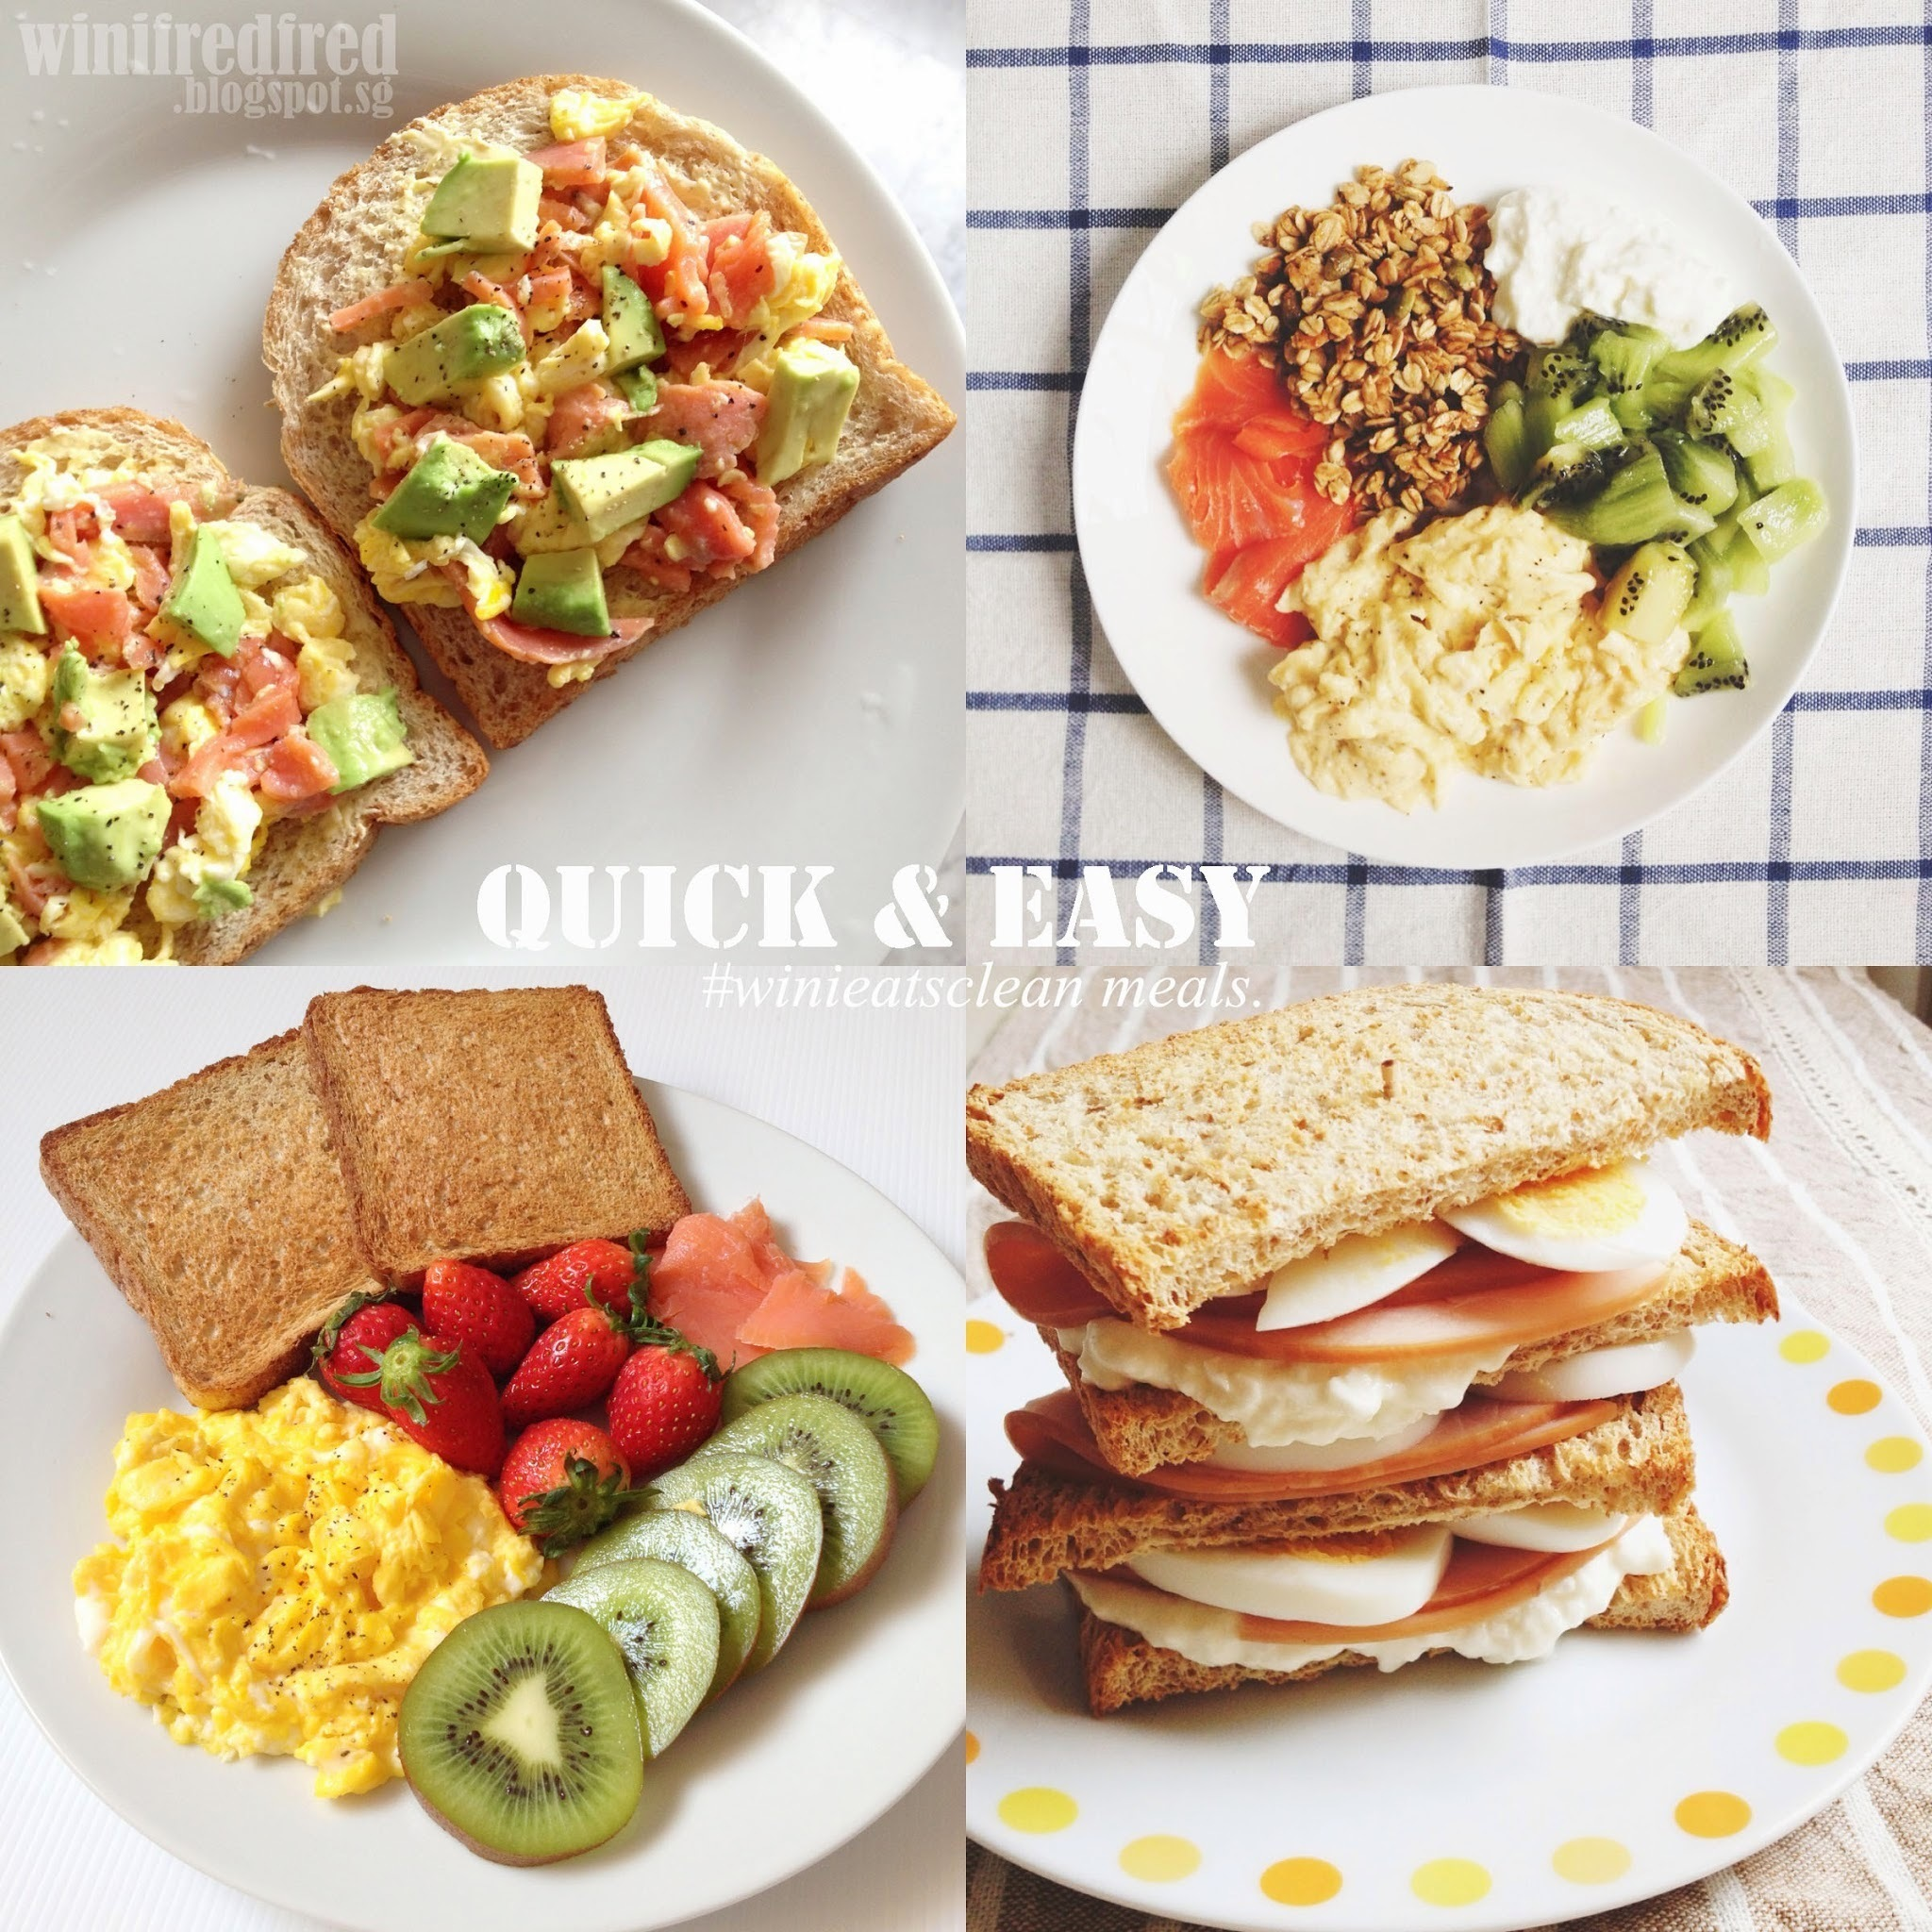 Quick, easy & healthy meals..for busy people like me & you!